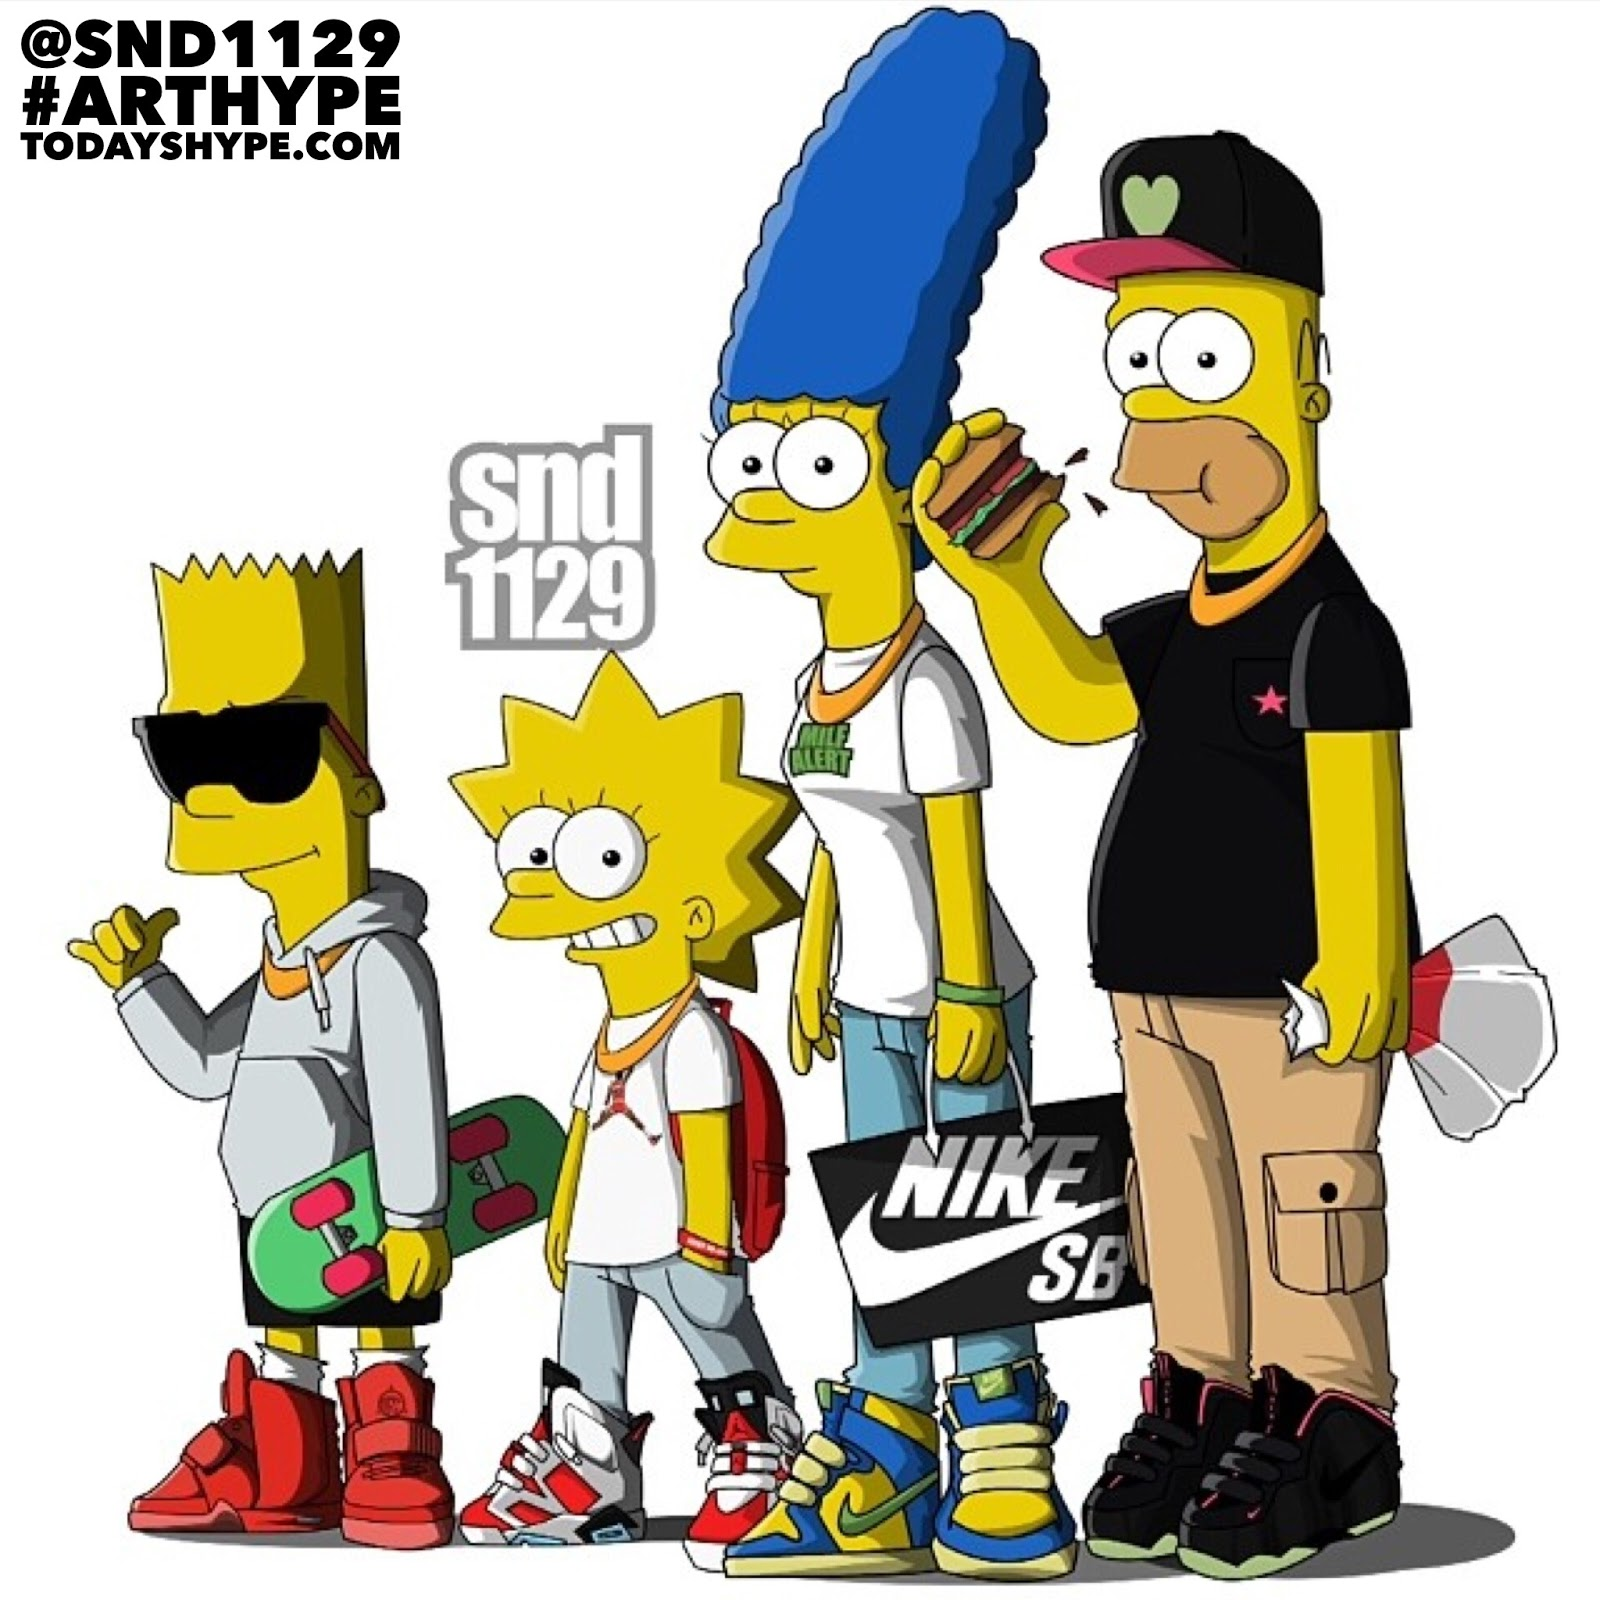 The Simpsons Illustrated In Supreme Off White Bape Nike together with Cartoon Streetwear likewise I M Nothing To Play With 313449145 further 2014 04 01 archive likewise Son Goku X Fat Tiger Red Timberland Bee. on dope cartoon characters wearing supreme